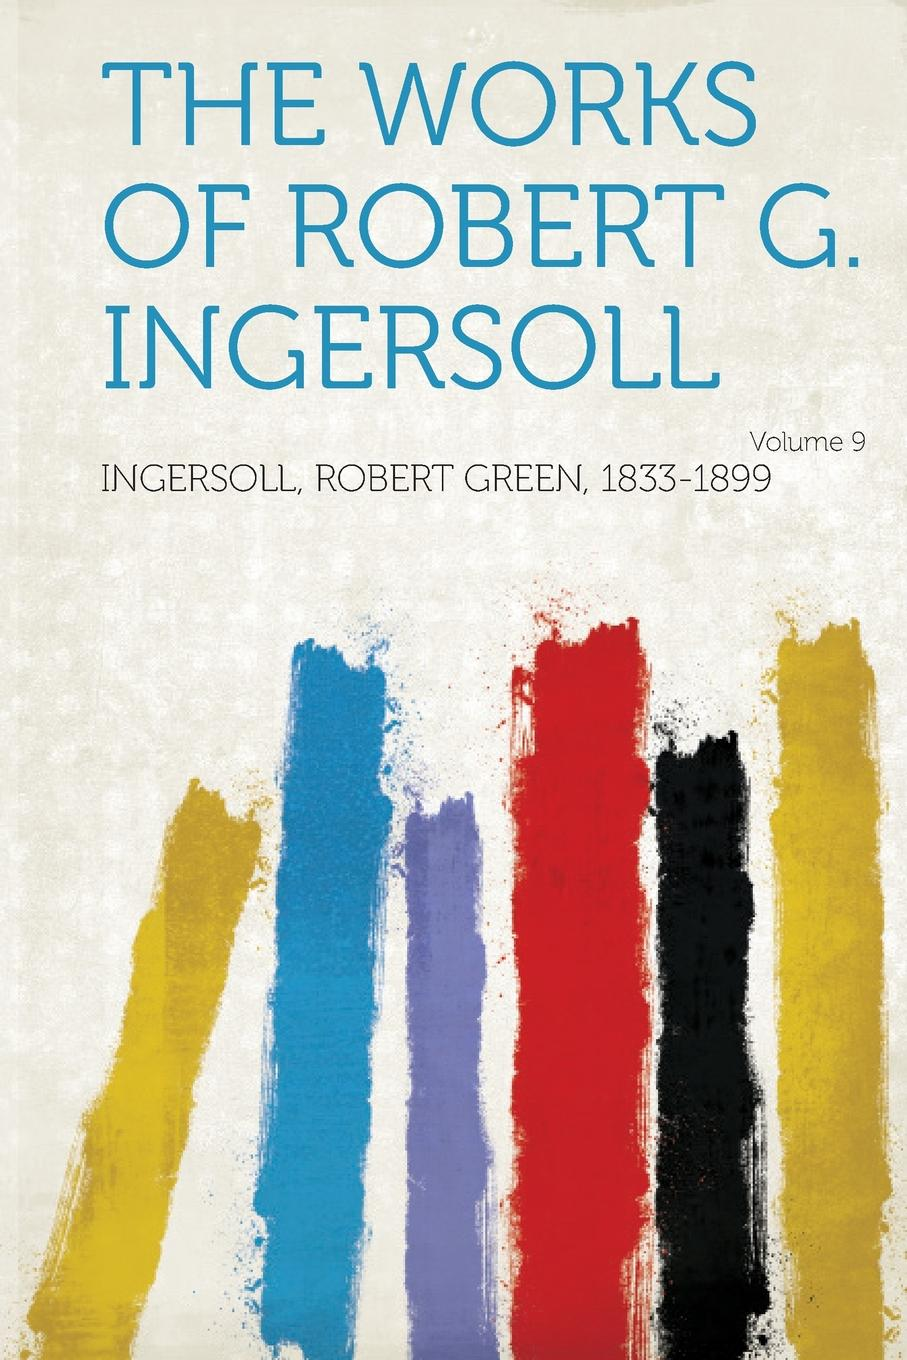 Ingersoll Robert Green 1833-1899 The Works of Robert G. Ingersoll Volume 9 robert green ingersoll the works of robert g ingersoll v 11